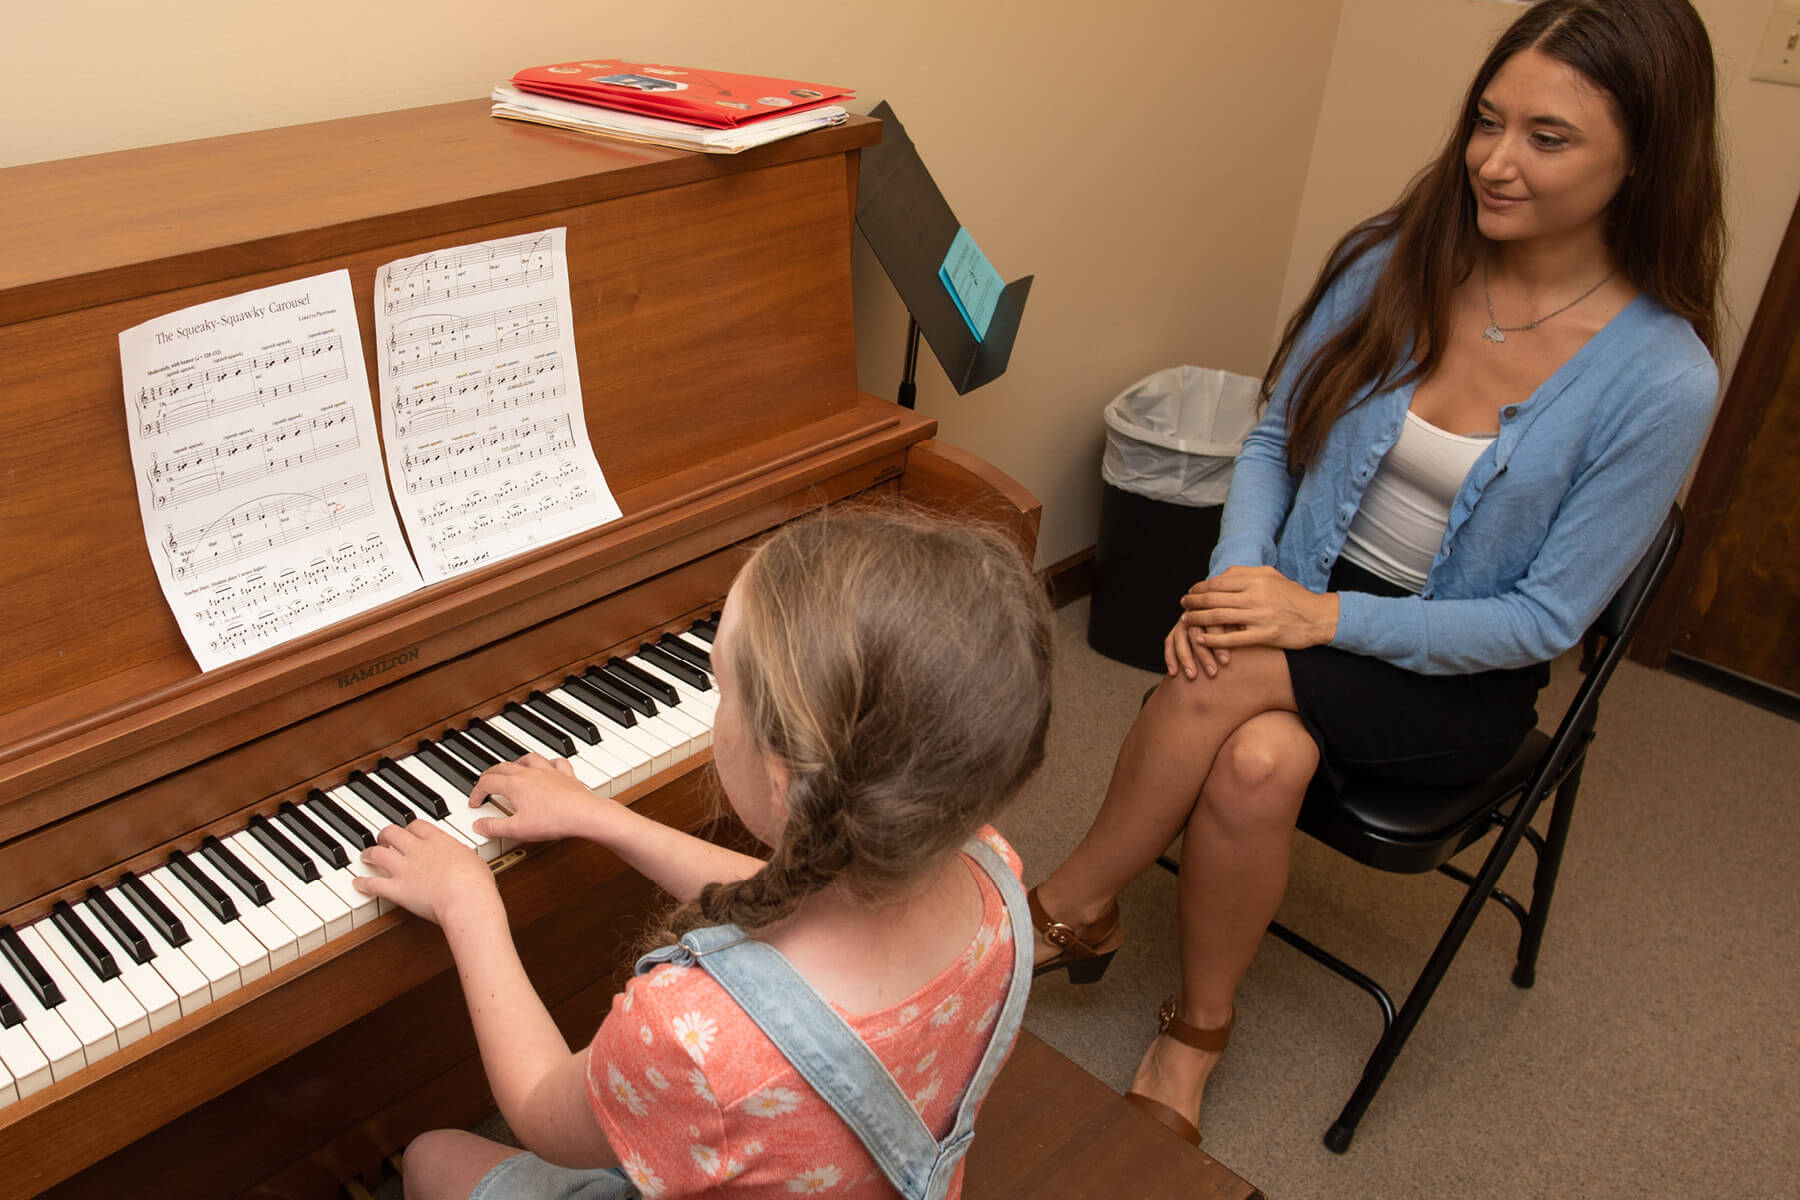 Piano lessons are fun at Lexington School of Music